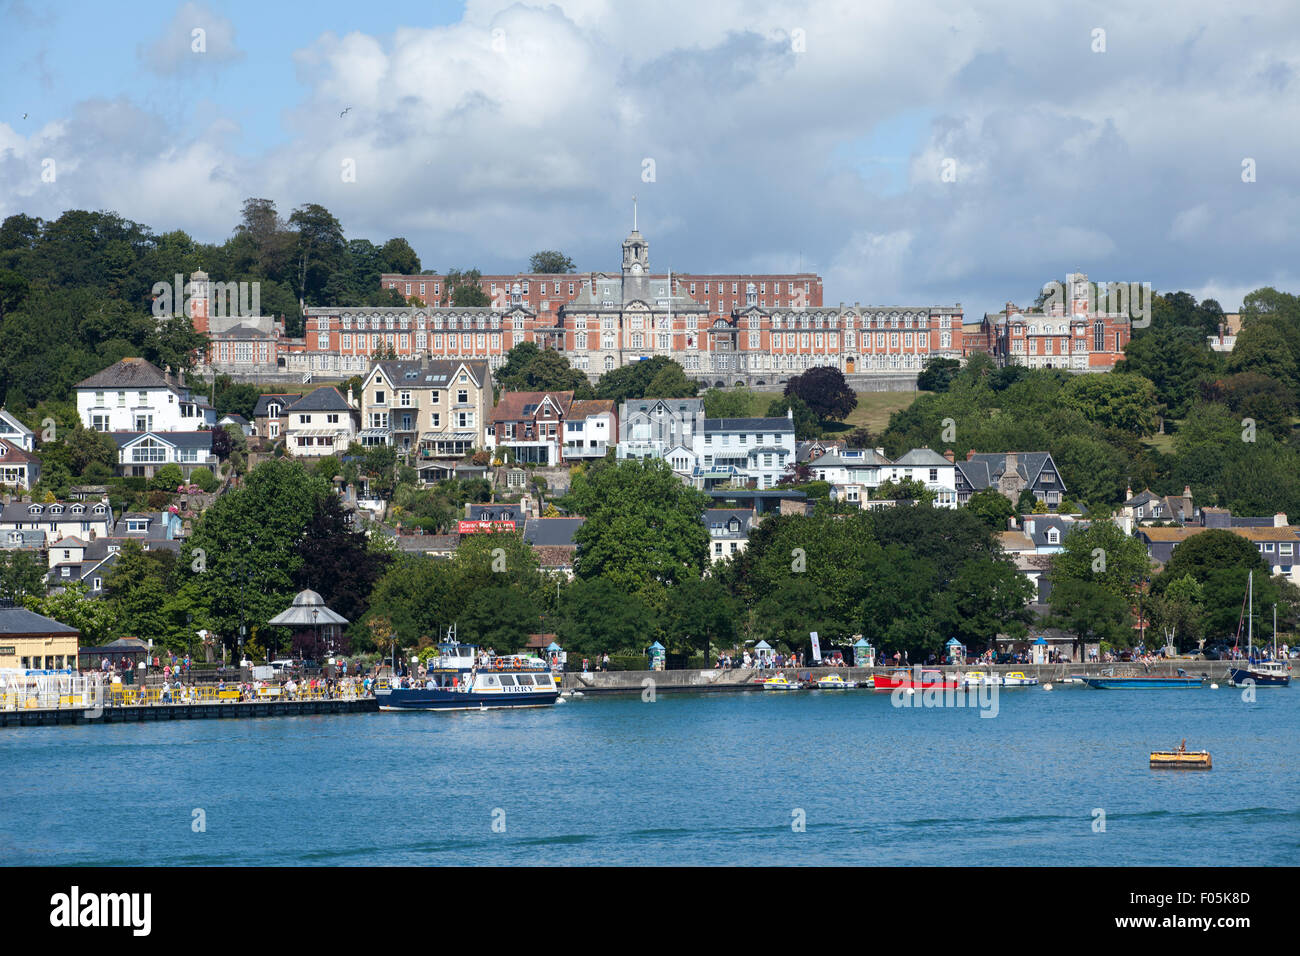 The Royal Naval College, Dartmouth, viewed across the River Dart from the Kinsgwear side Stock Photo